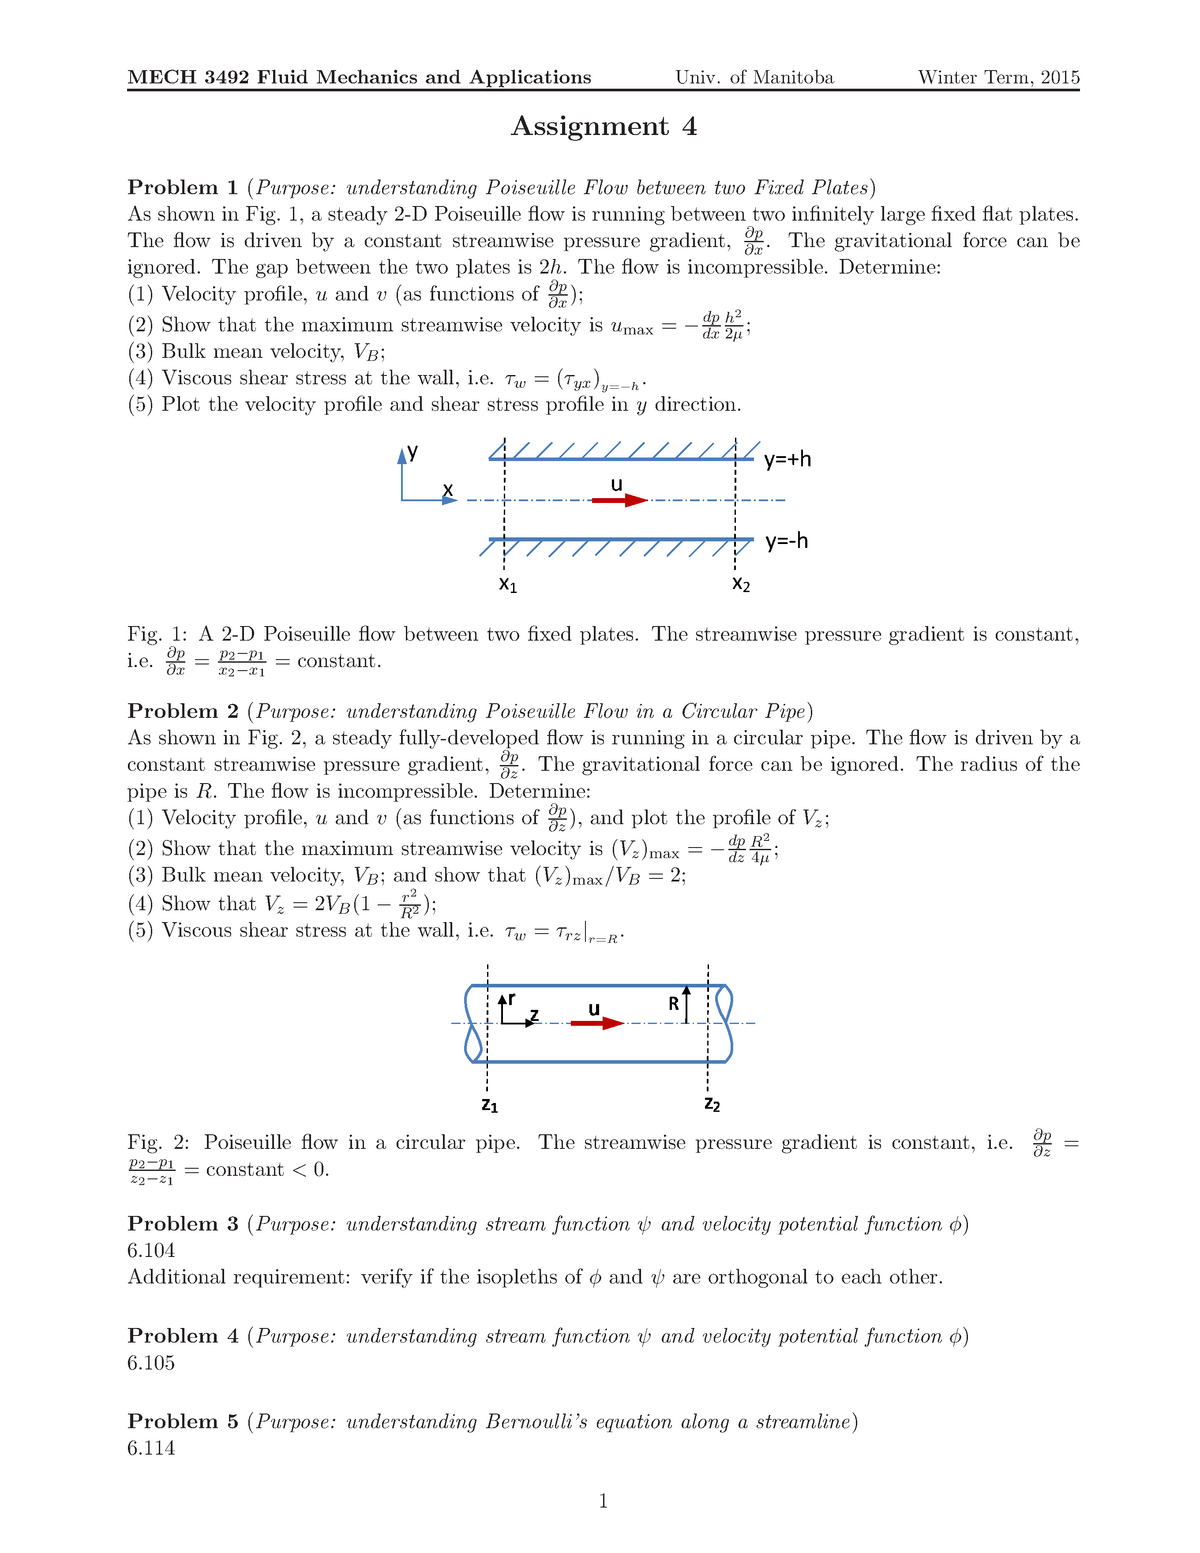 Fluid Mechanics And Applications Assignment 4 with solutions